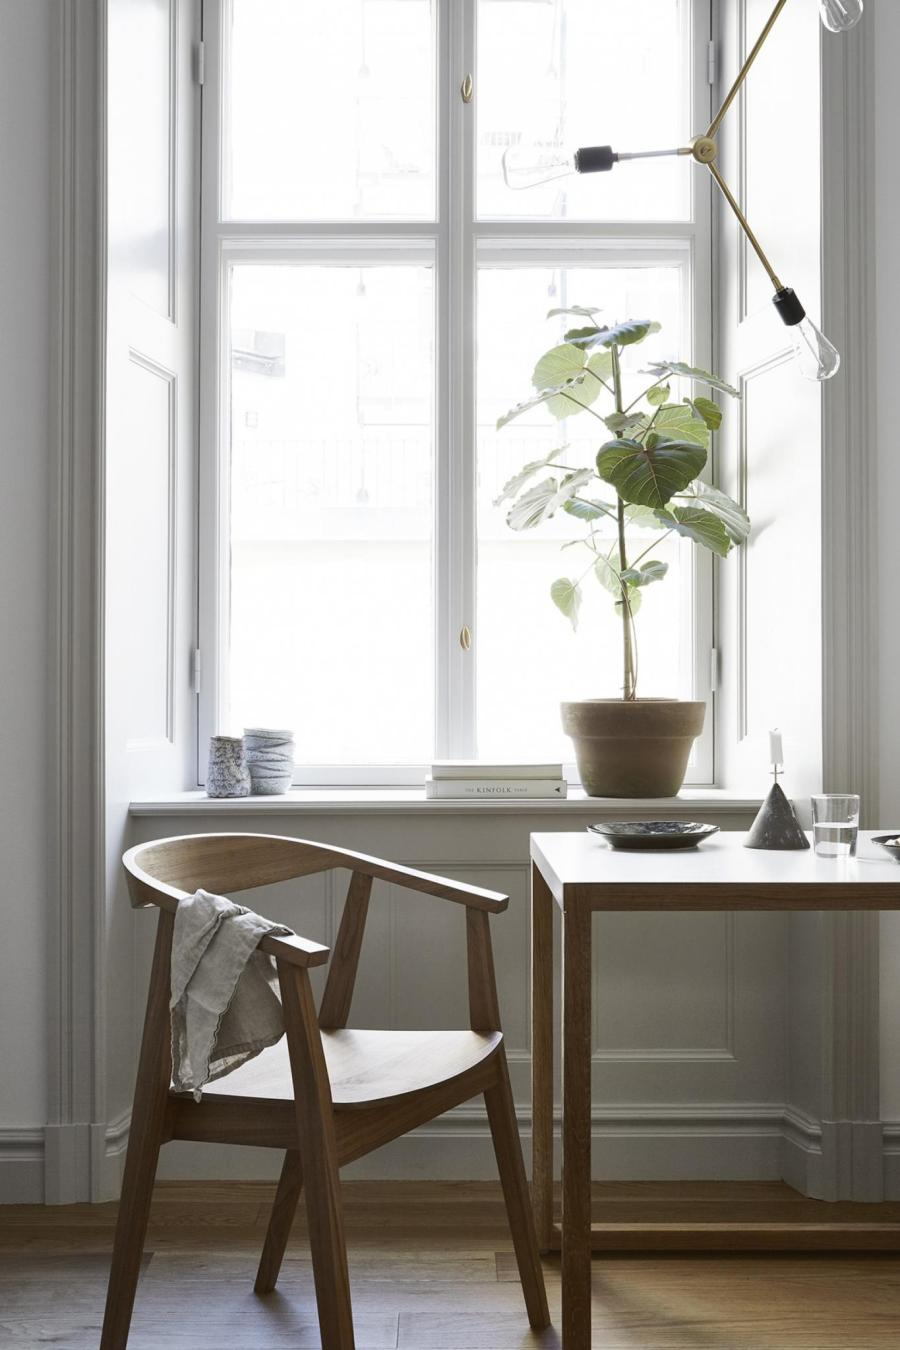 I wish I lived here: neutral small space living in Stockholm